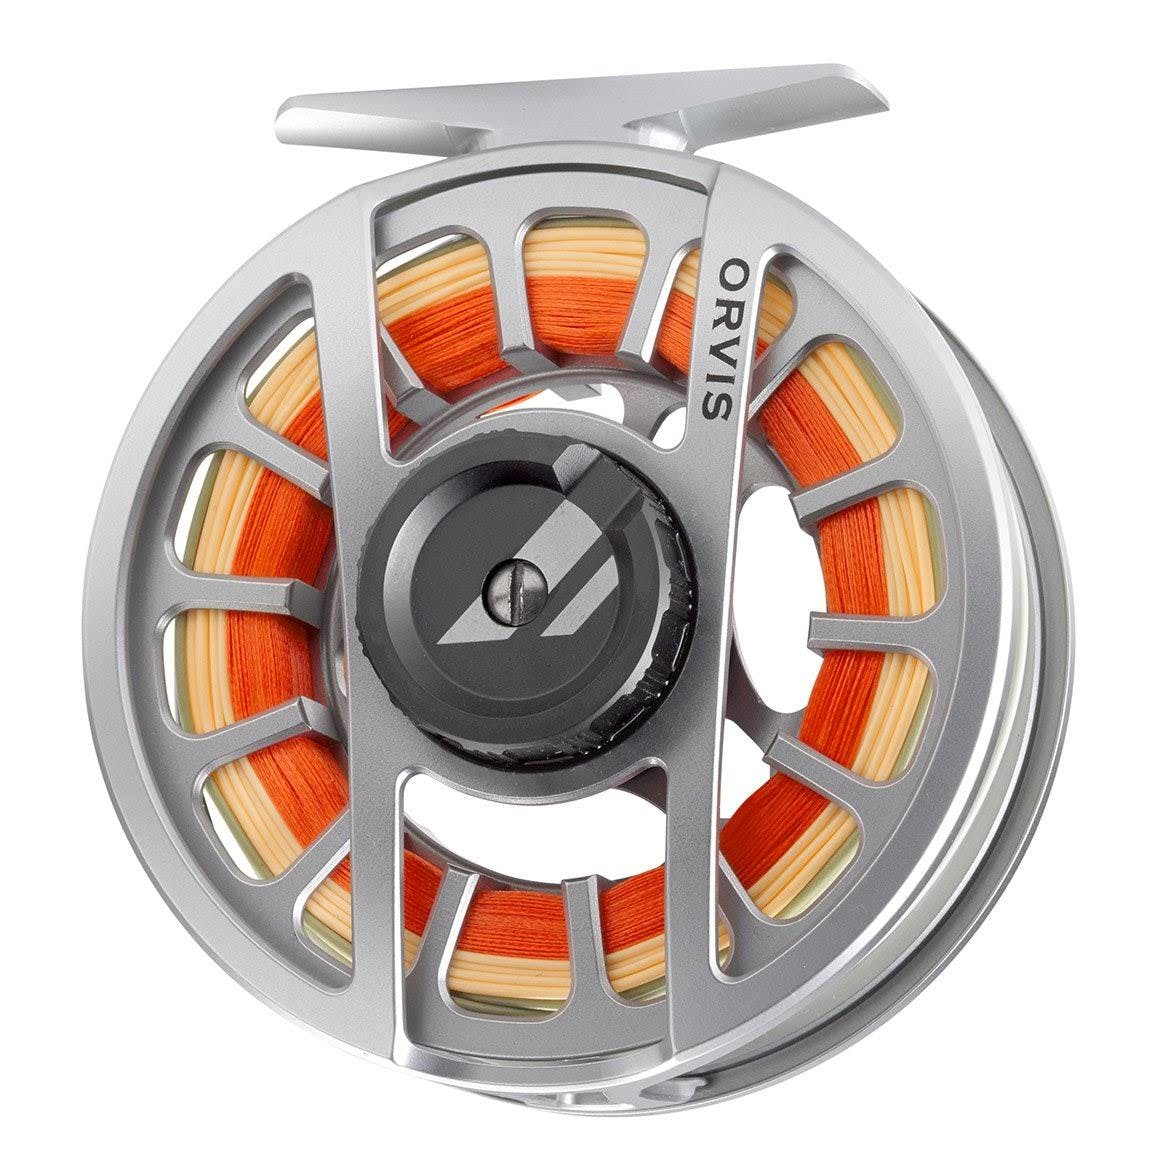 Orvis Hydros Fly Reel, Silver / I